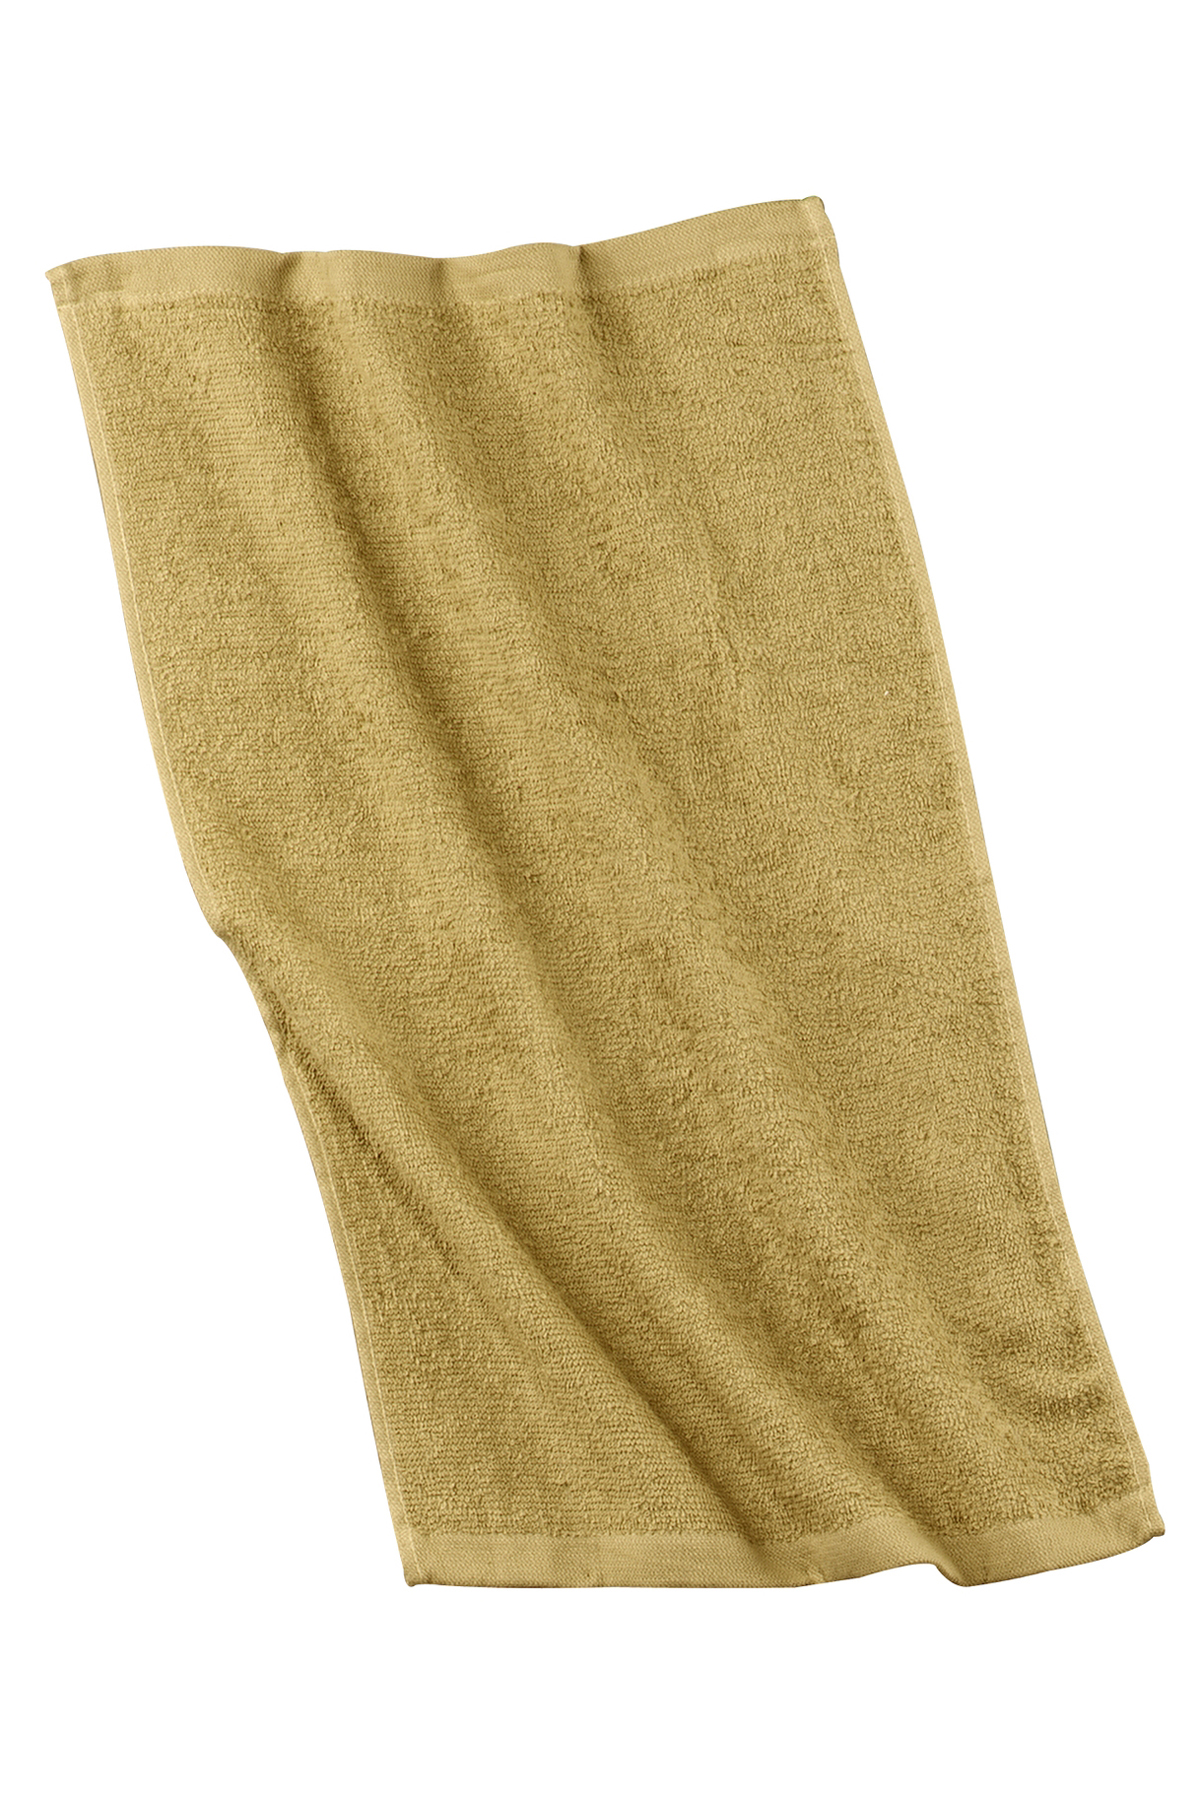 Accessories-Robes-Towels-1